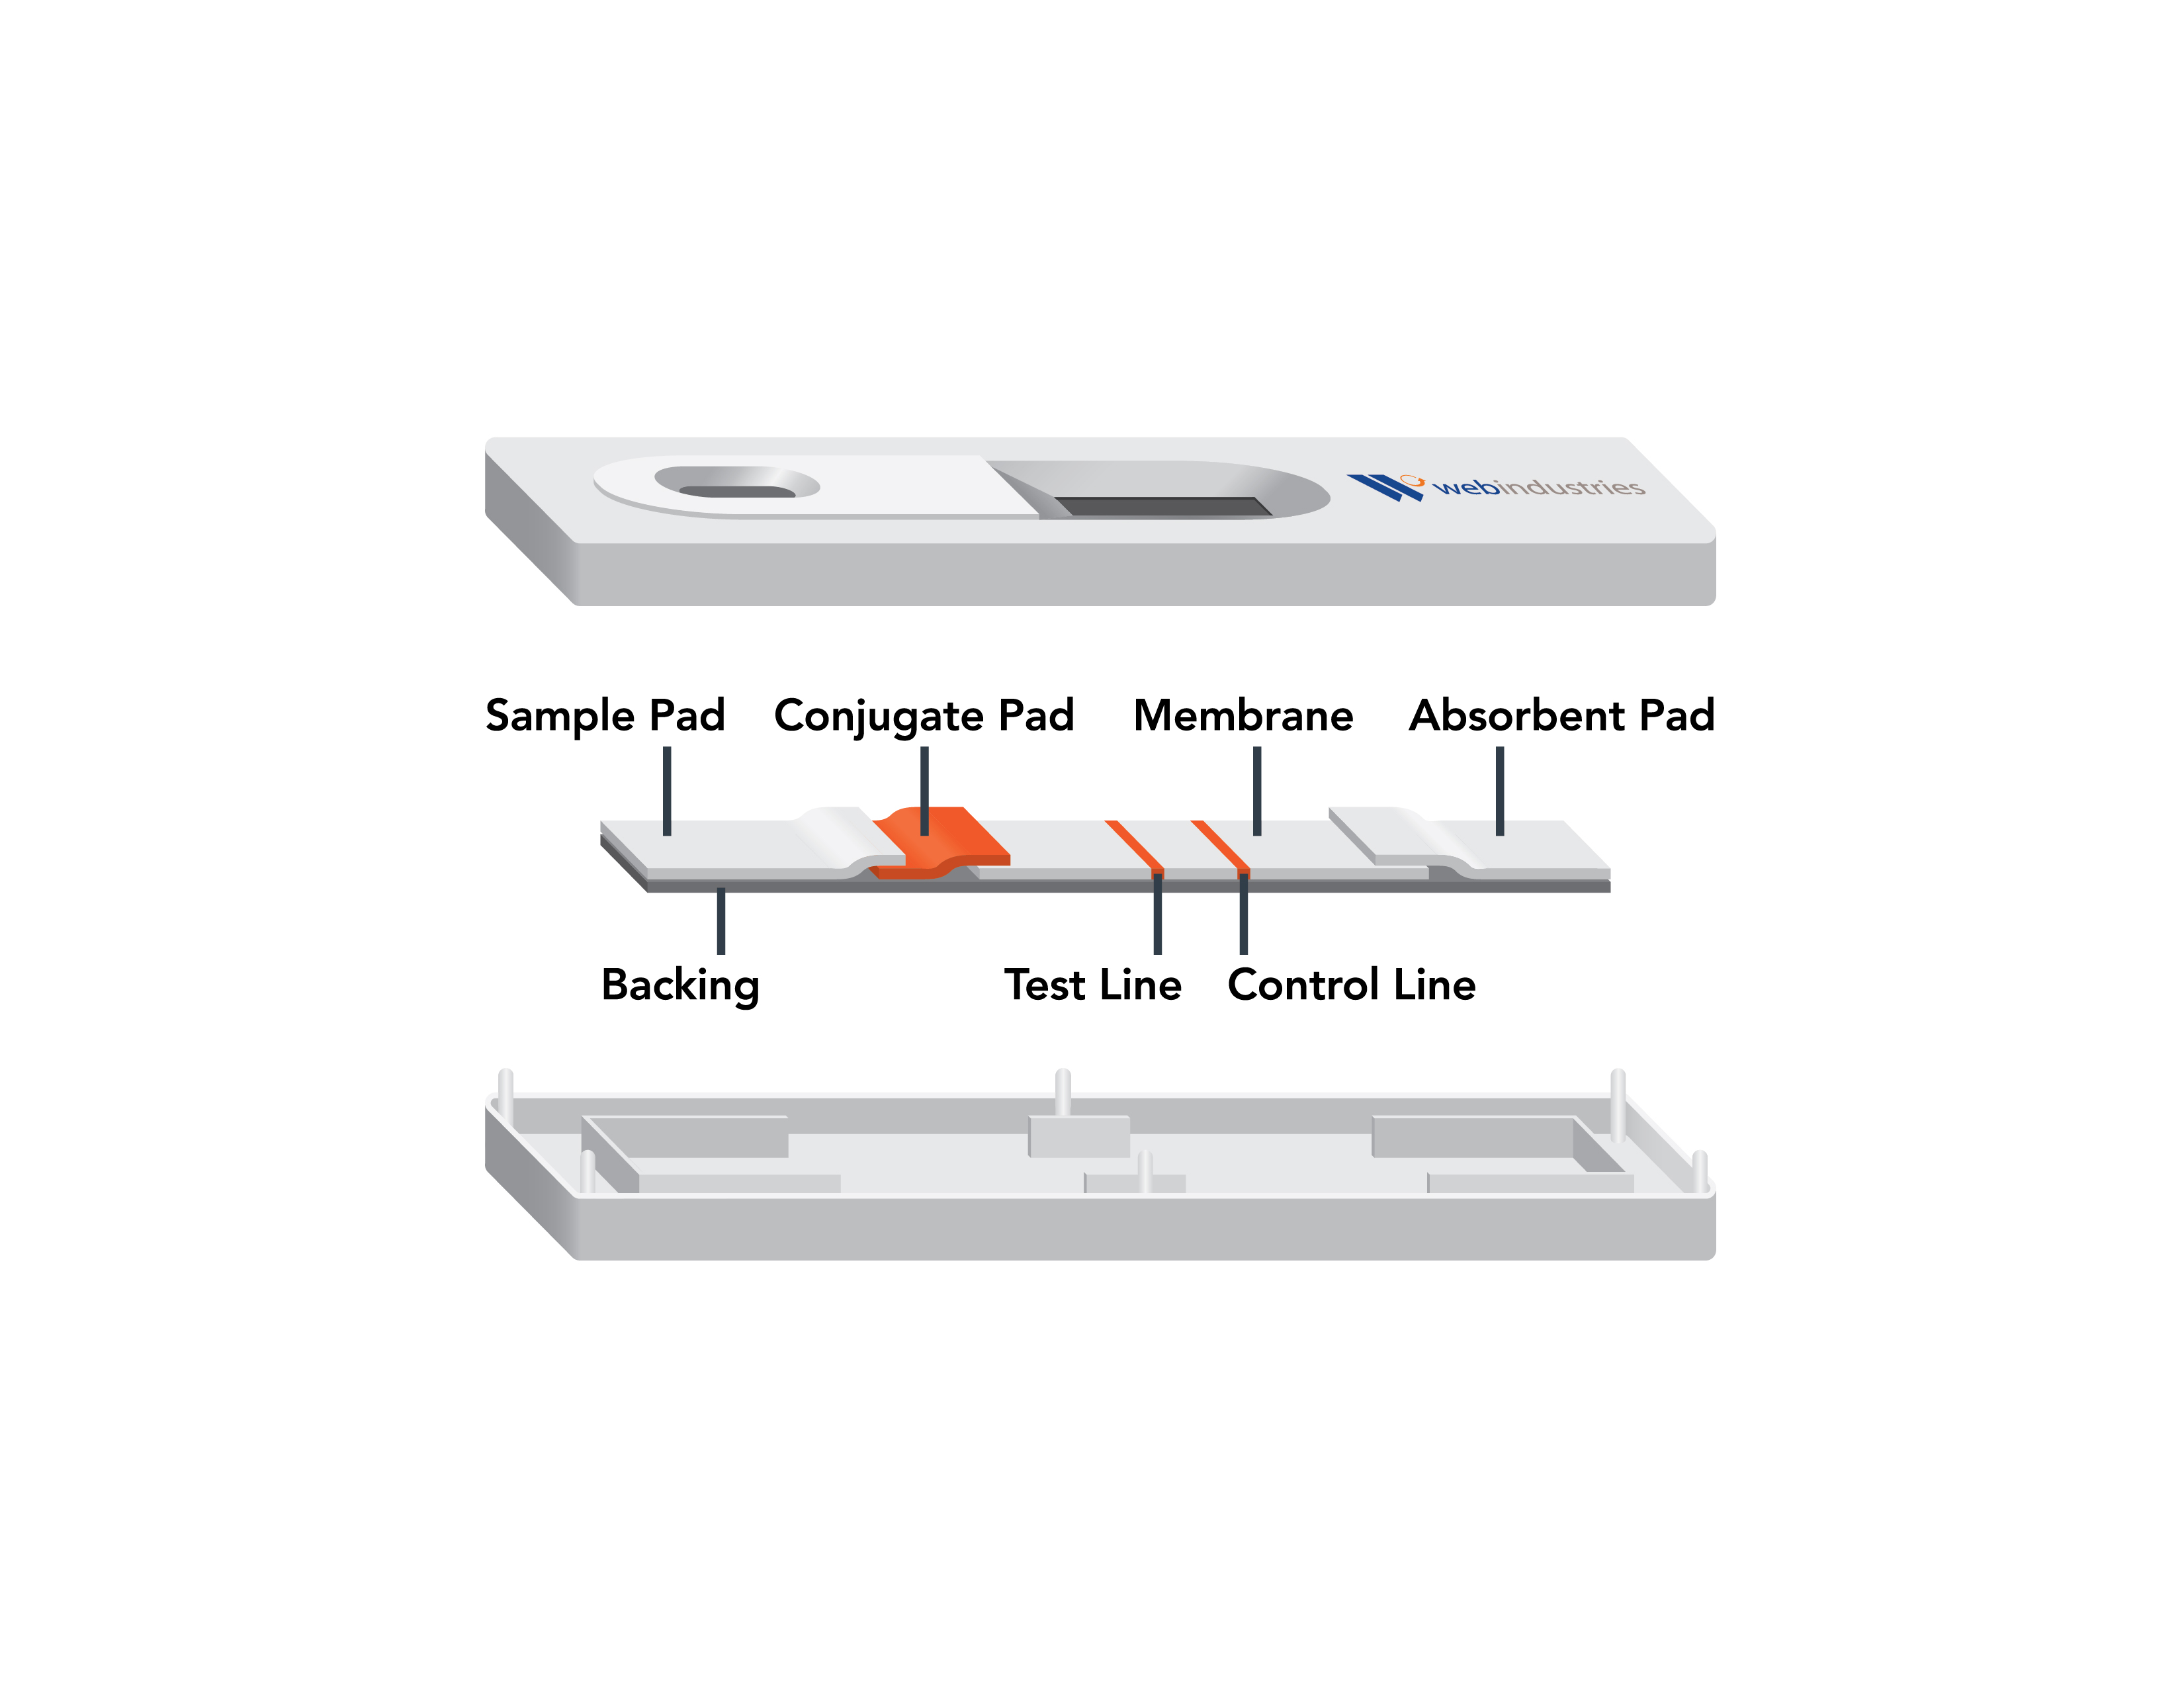 lateral flow immunoassay (LFI) device courtesy Web Industries